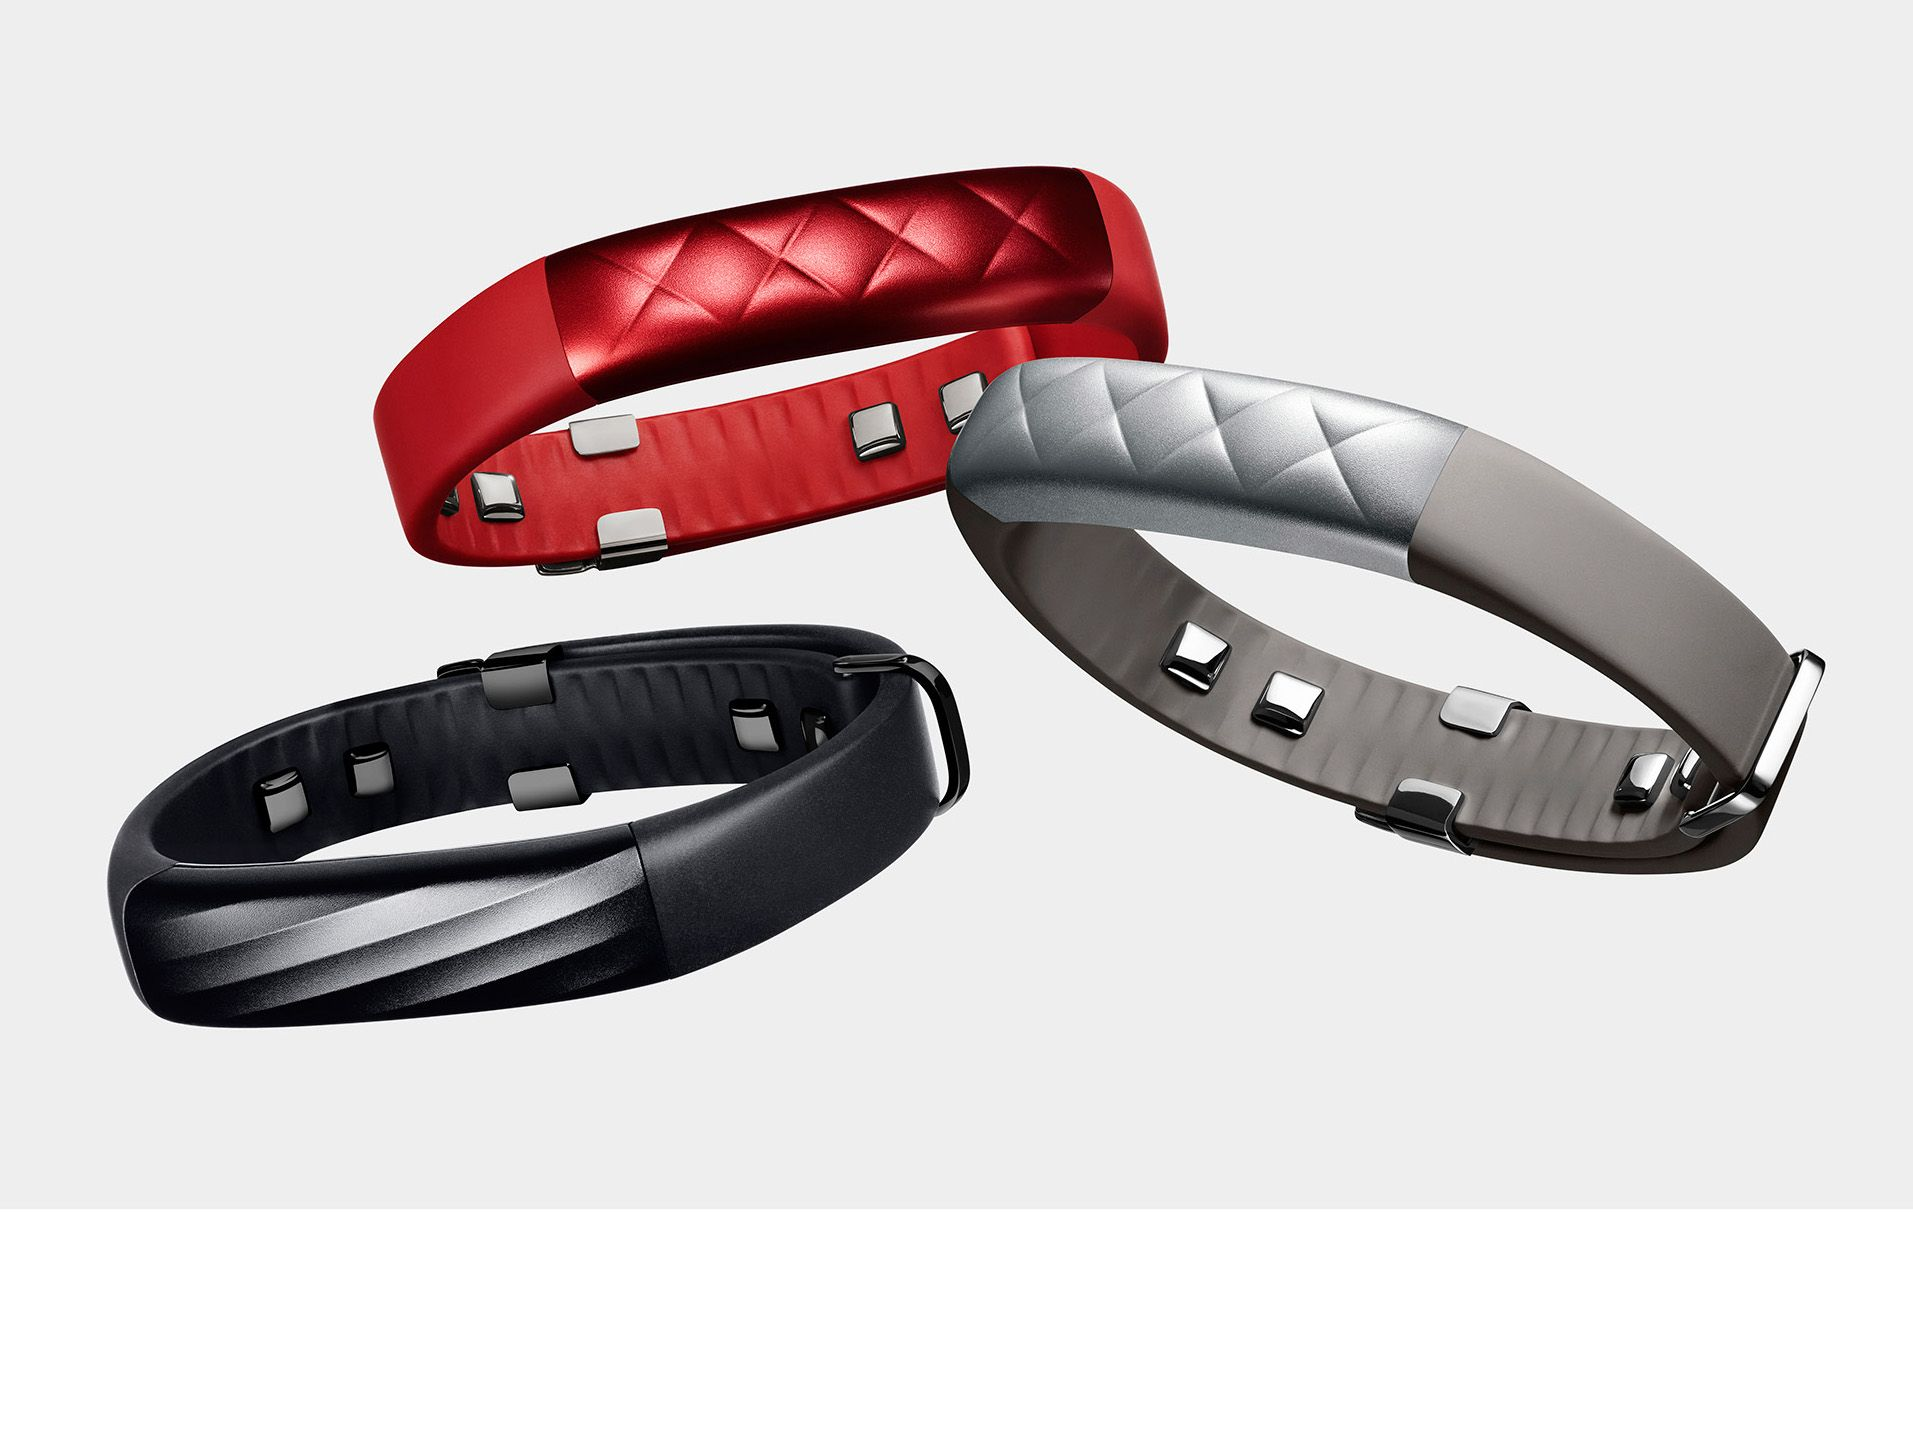 The new Yves Béhar designed Jawbone UP3 wearable fitness band tracks nearly everything you do, morning to night, with 7 days in-between charging.